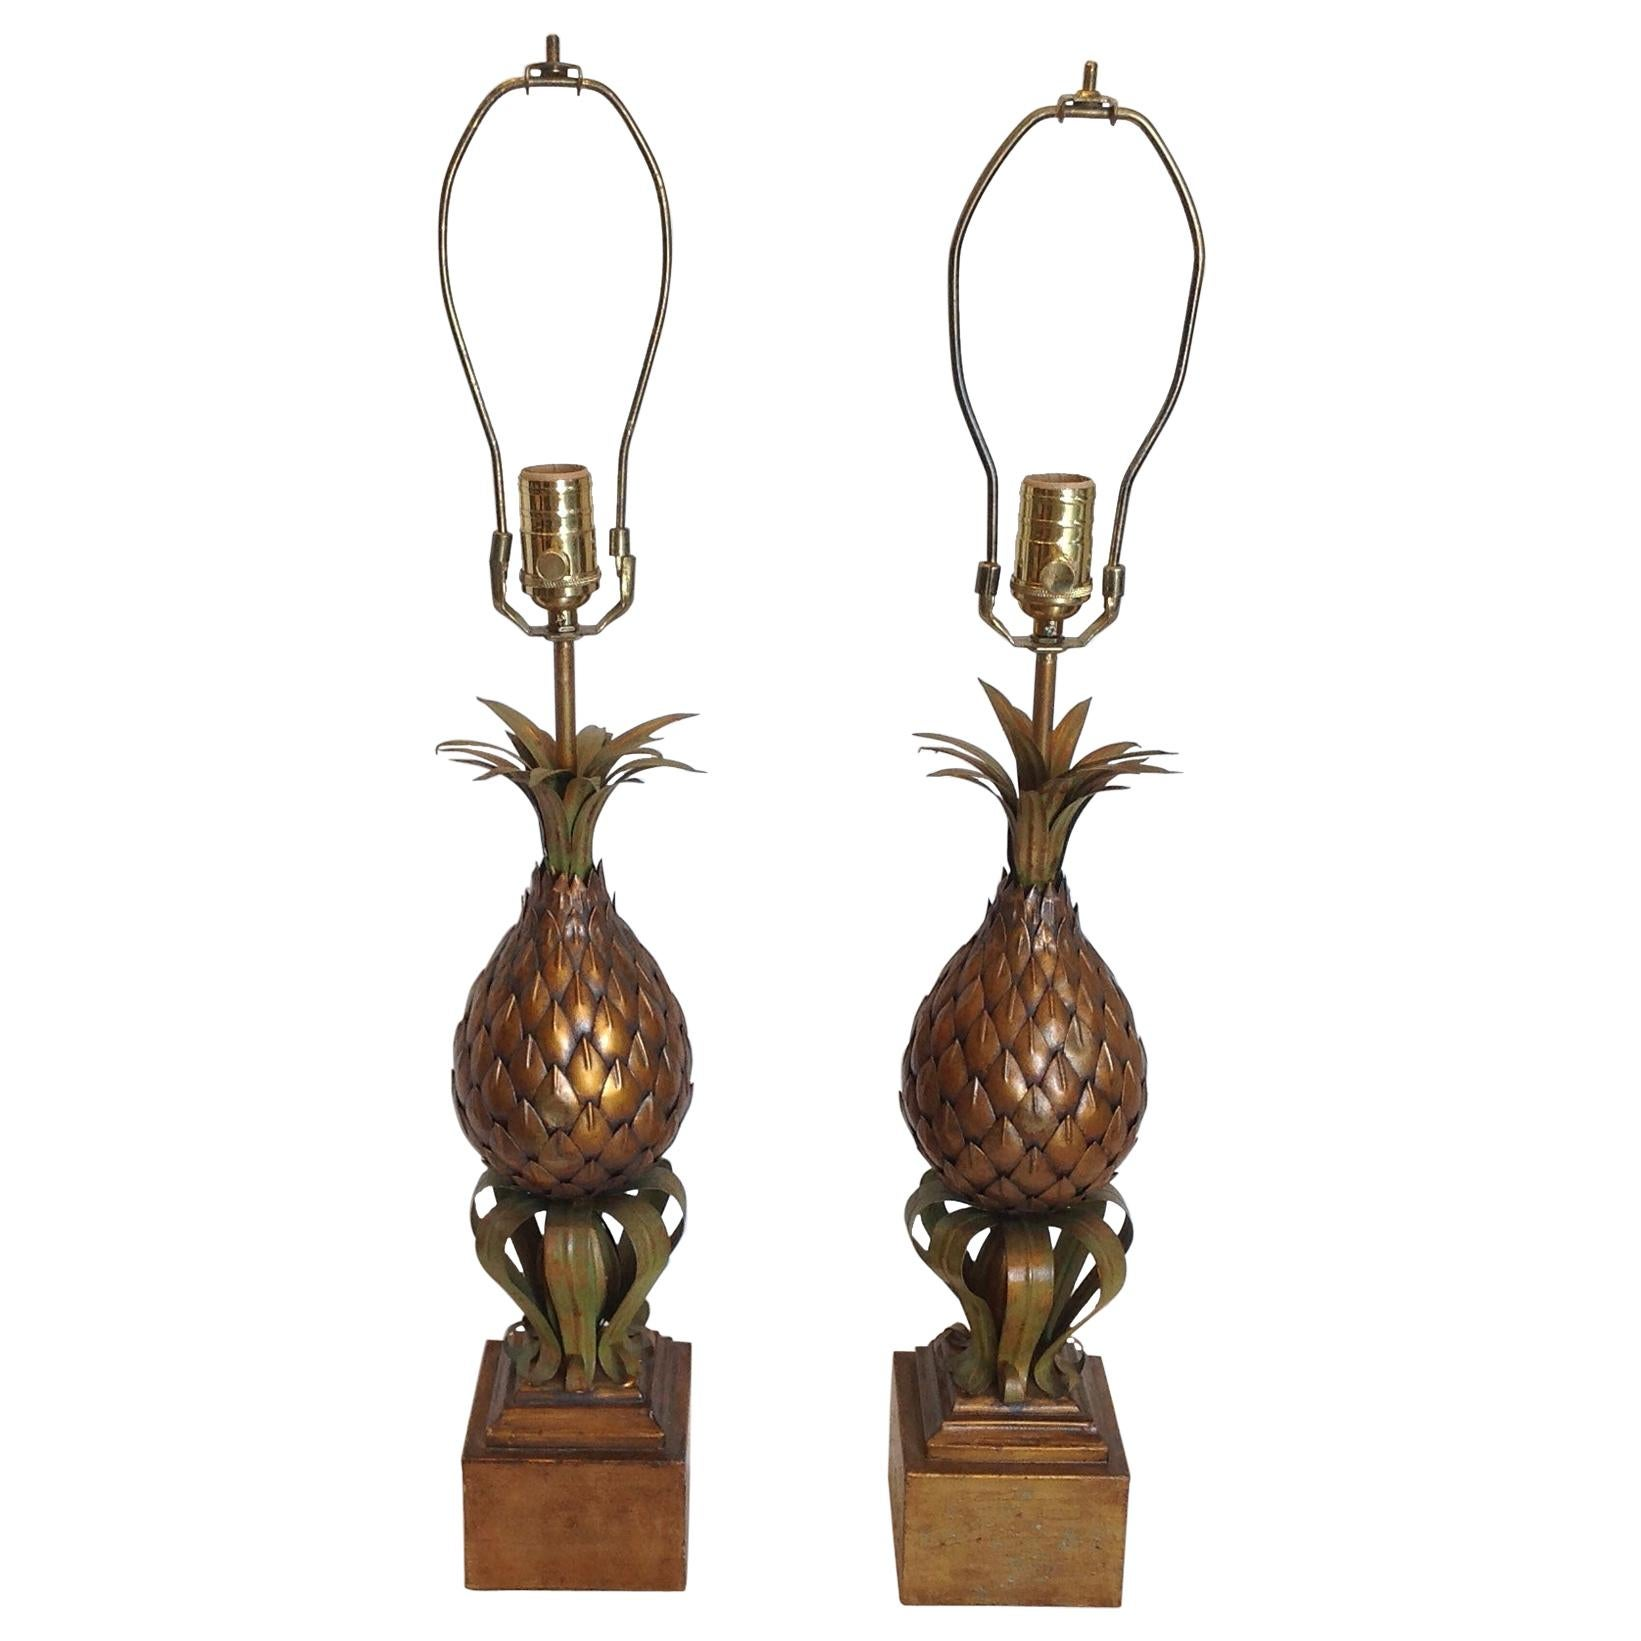 Pair of Midcentury Tole Pineapple Lamps